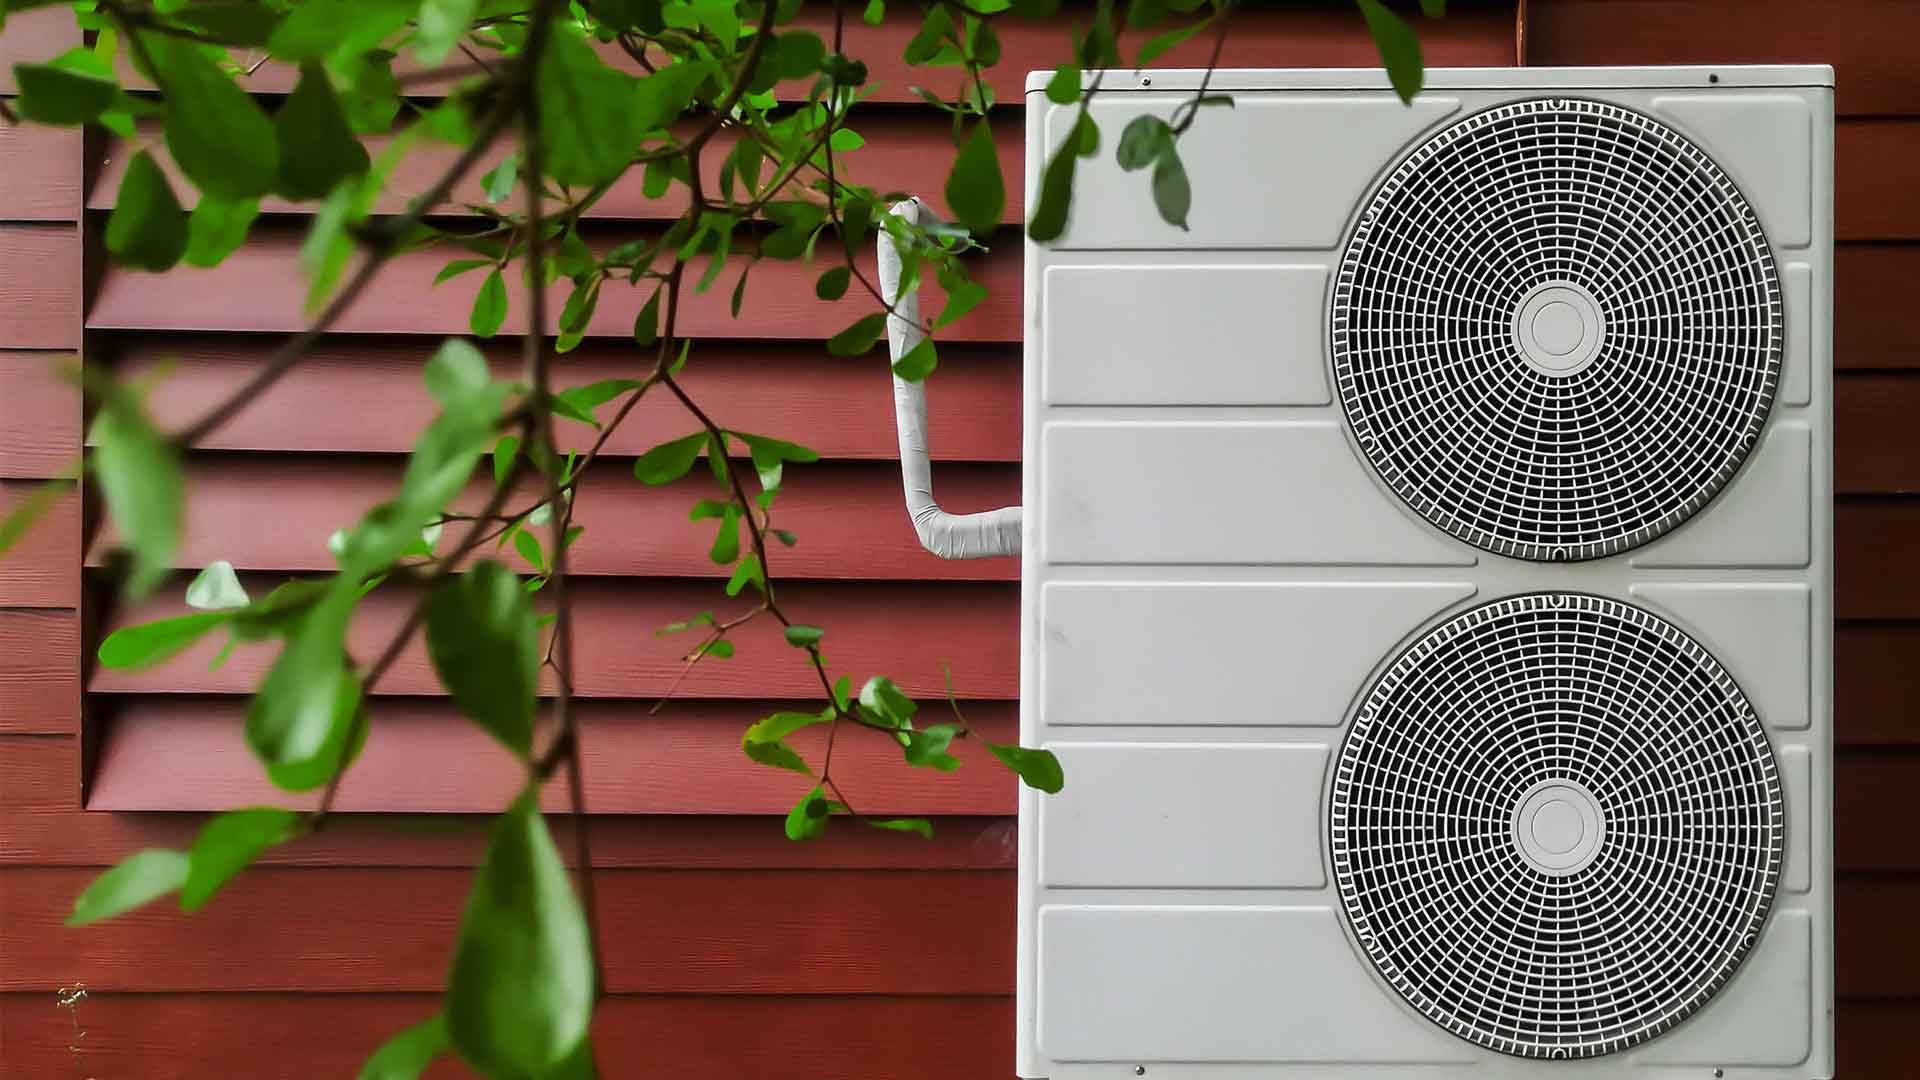 Air conditioning units on wall, outside a house, mounted on the ground